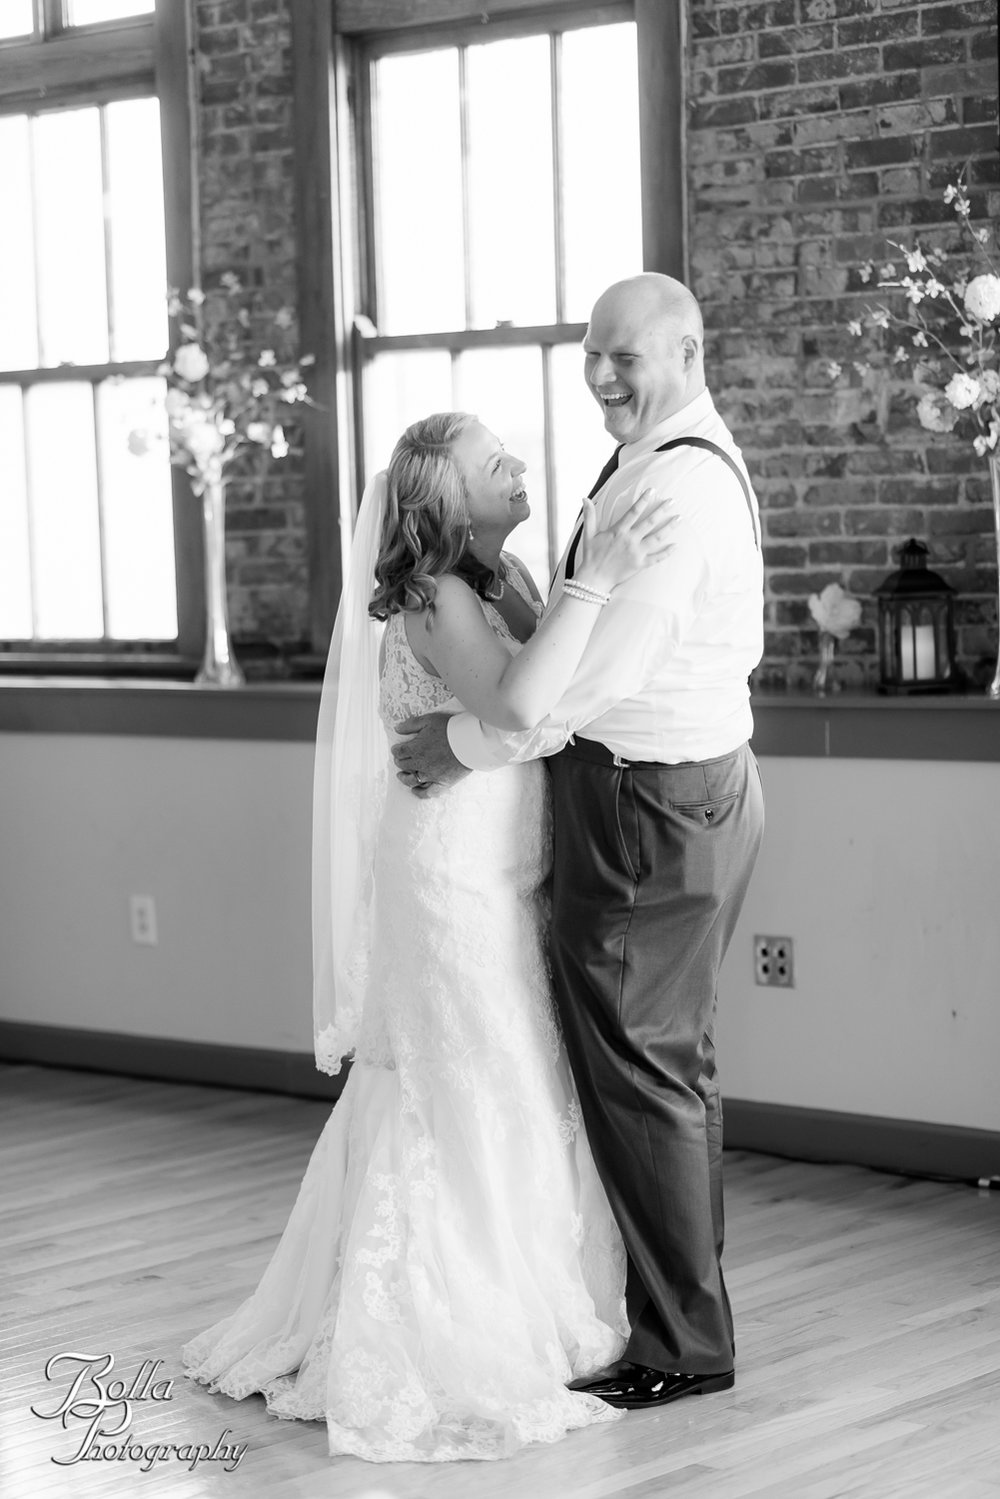 Bolla_Photography_St_Louis_wedding_photographer_Wildey_Theater_Edwardsville-0373-2.jpg